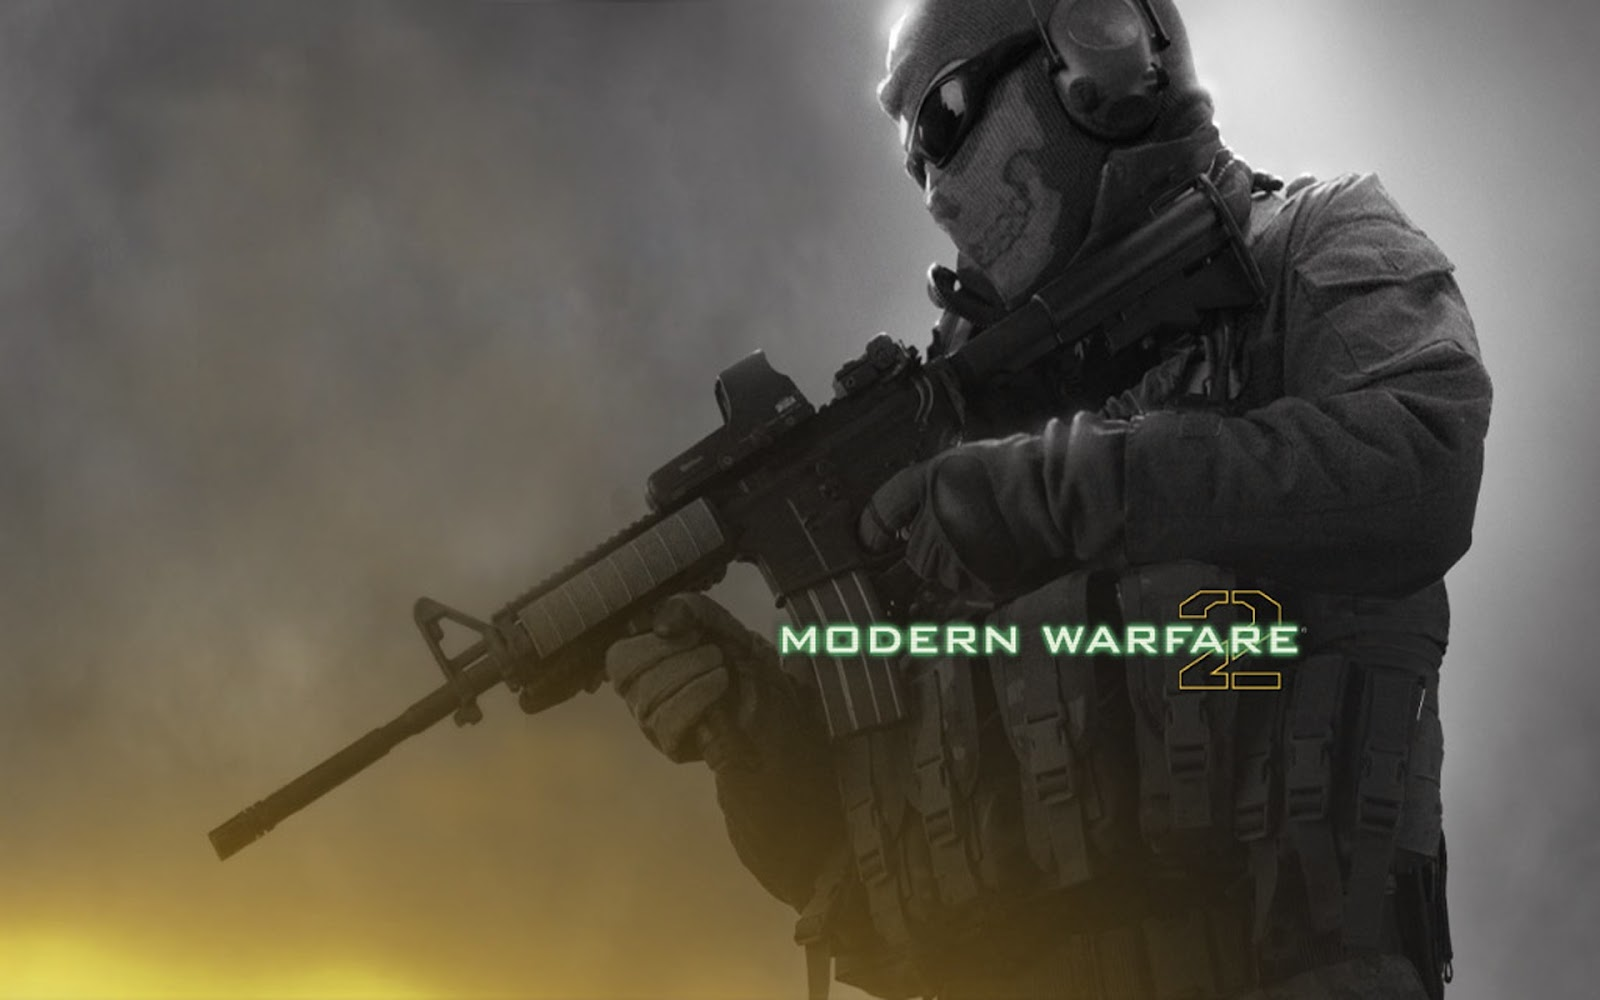 http://2.bp.blogspot.com/-OwnSecW-4eA/UAfkUhHY35I/AAAAAAAABas/LmffBJCO_LA/s1600/call+of+duty+modern+warfare+2+mw2+wallpaper+background+infinity+ward+fps+first+person+shooter.jpg